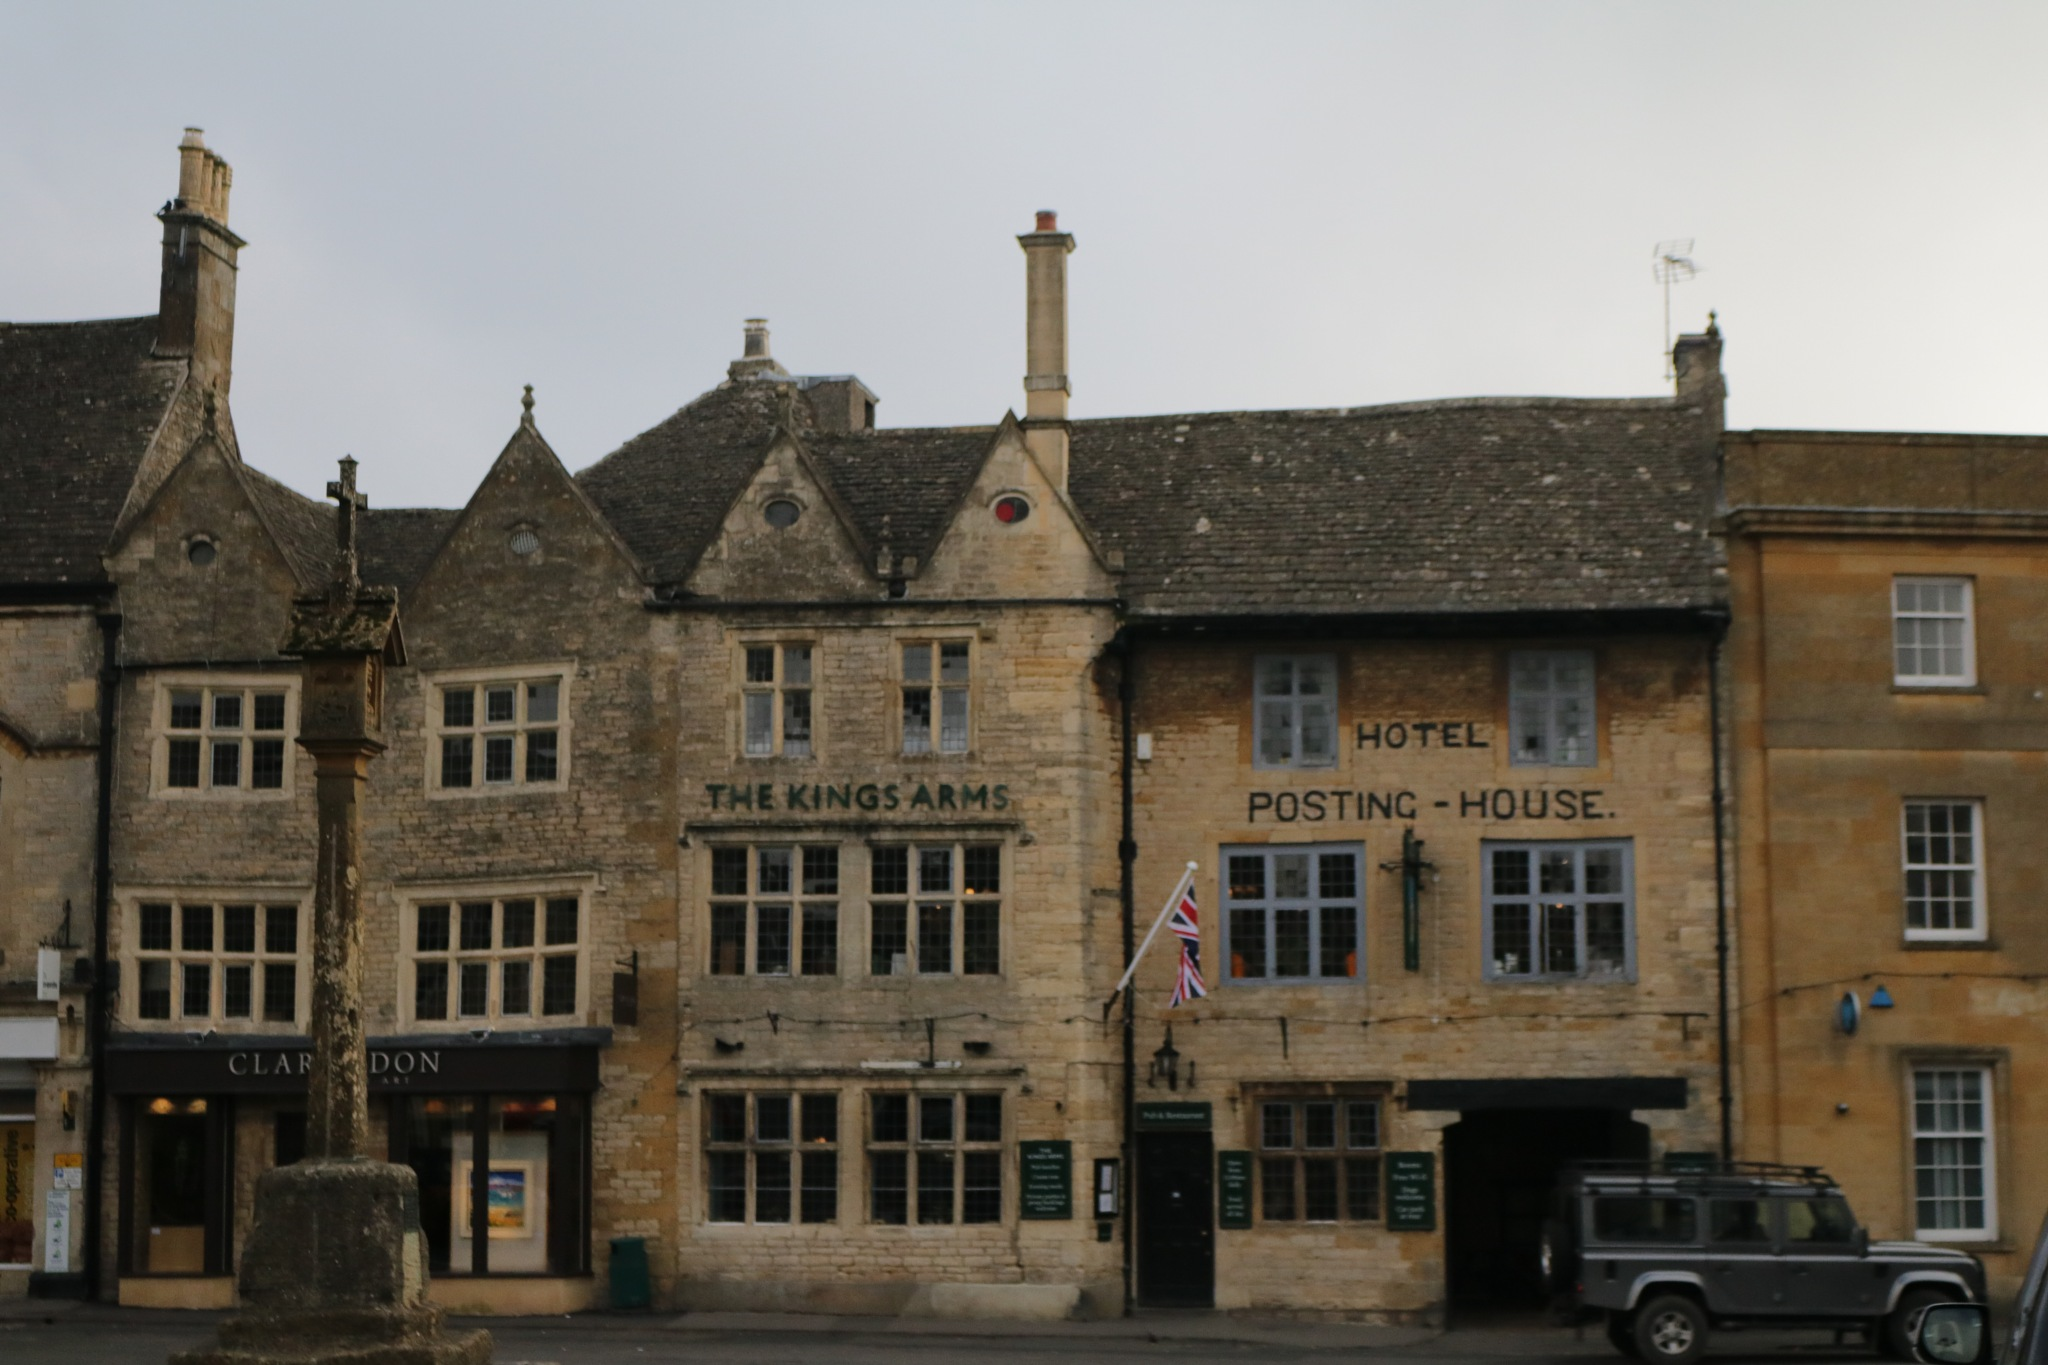 Old buildings in Stow by Mo Dessouki